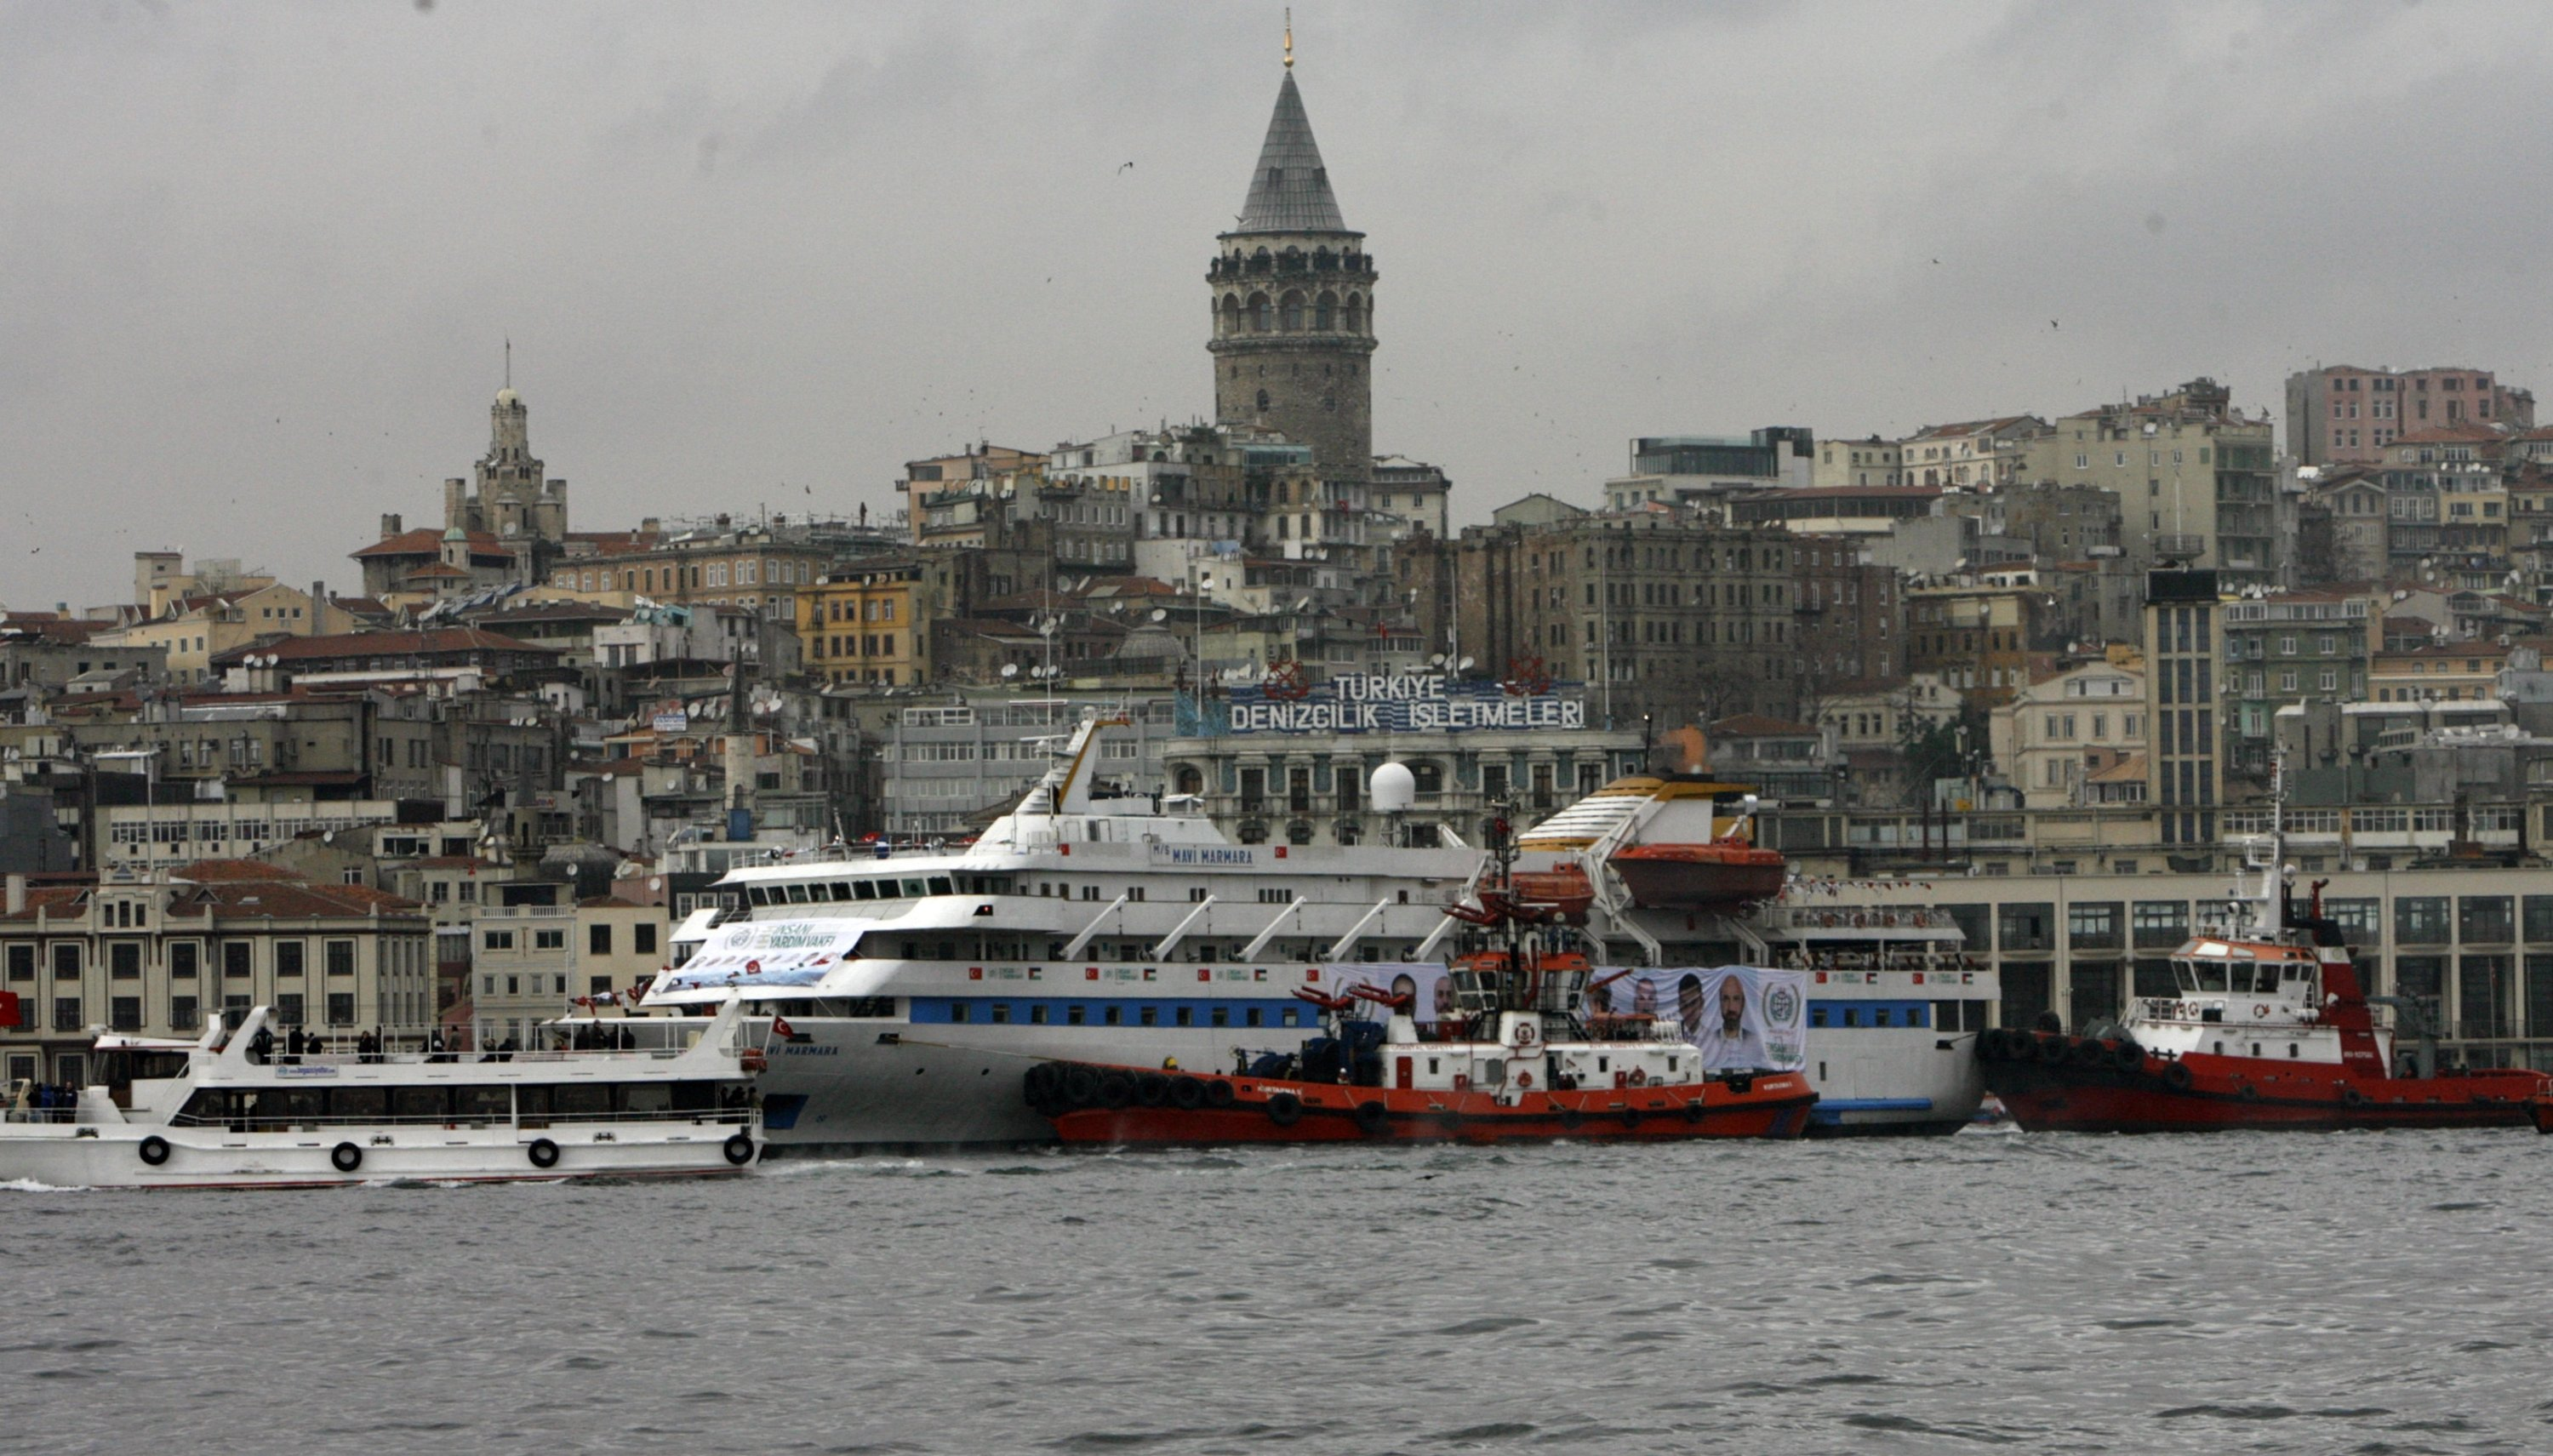 With the historical Galata Tower in the background, the Mavi Marmara – the lead boat of a flotilla headed to the Gaza Strip that was stormed by Israeli naval commandos in a predawn confrontation in the Mediterranean on May 31, 2010 – returns in Istanbul, Turkey, Dec. 26, 2010. (AP Photo)